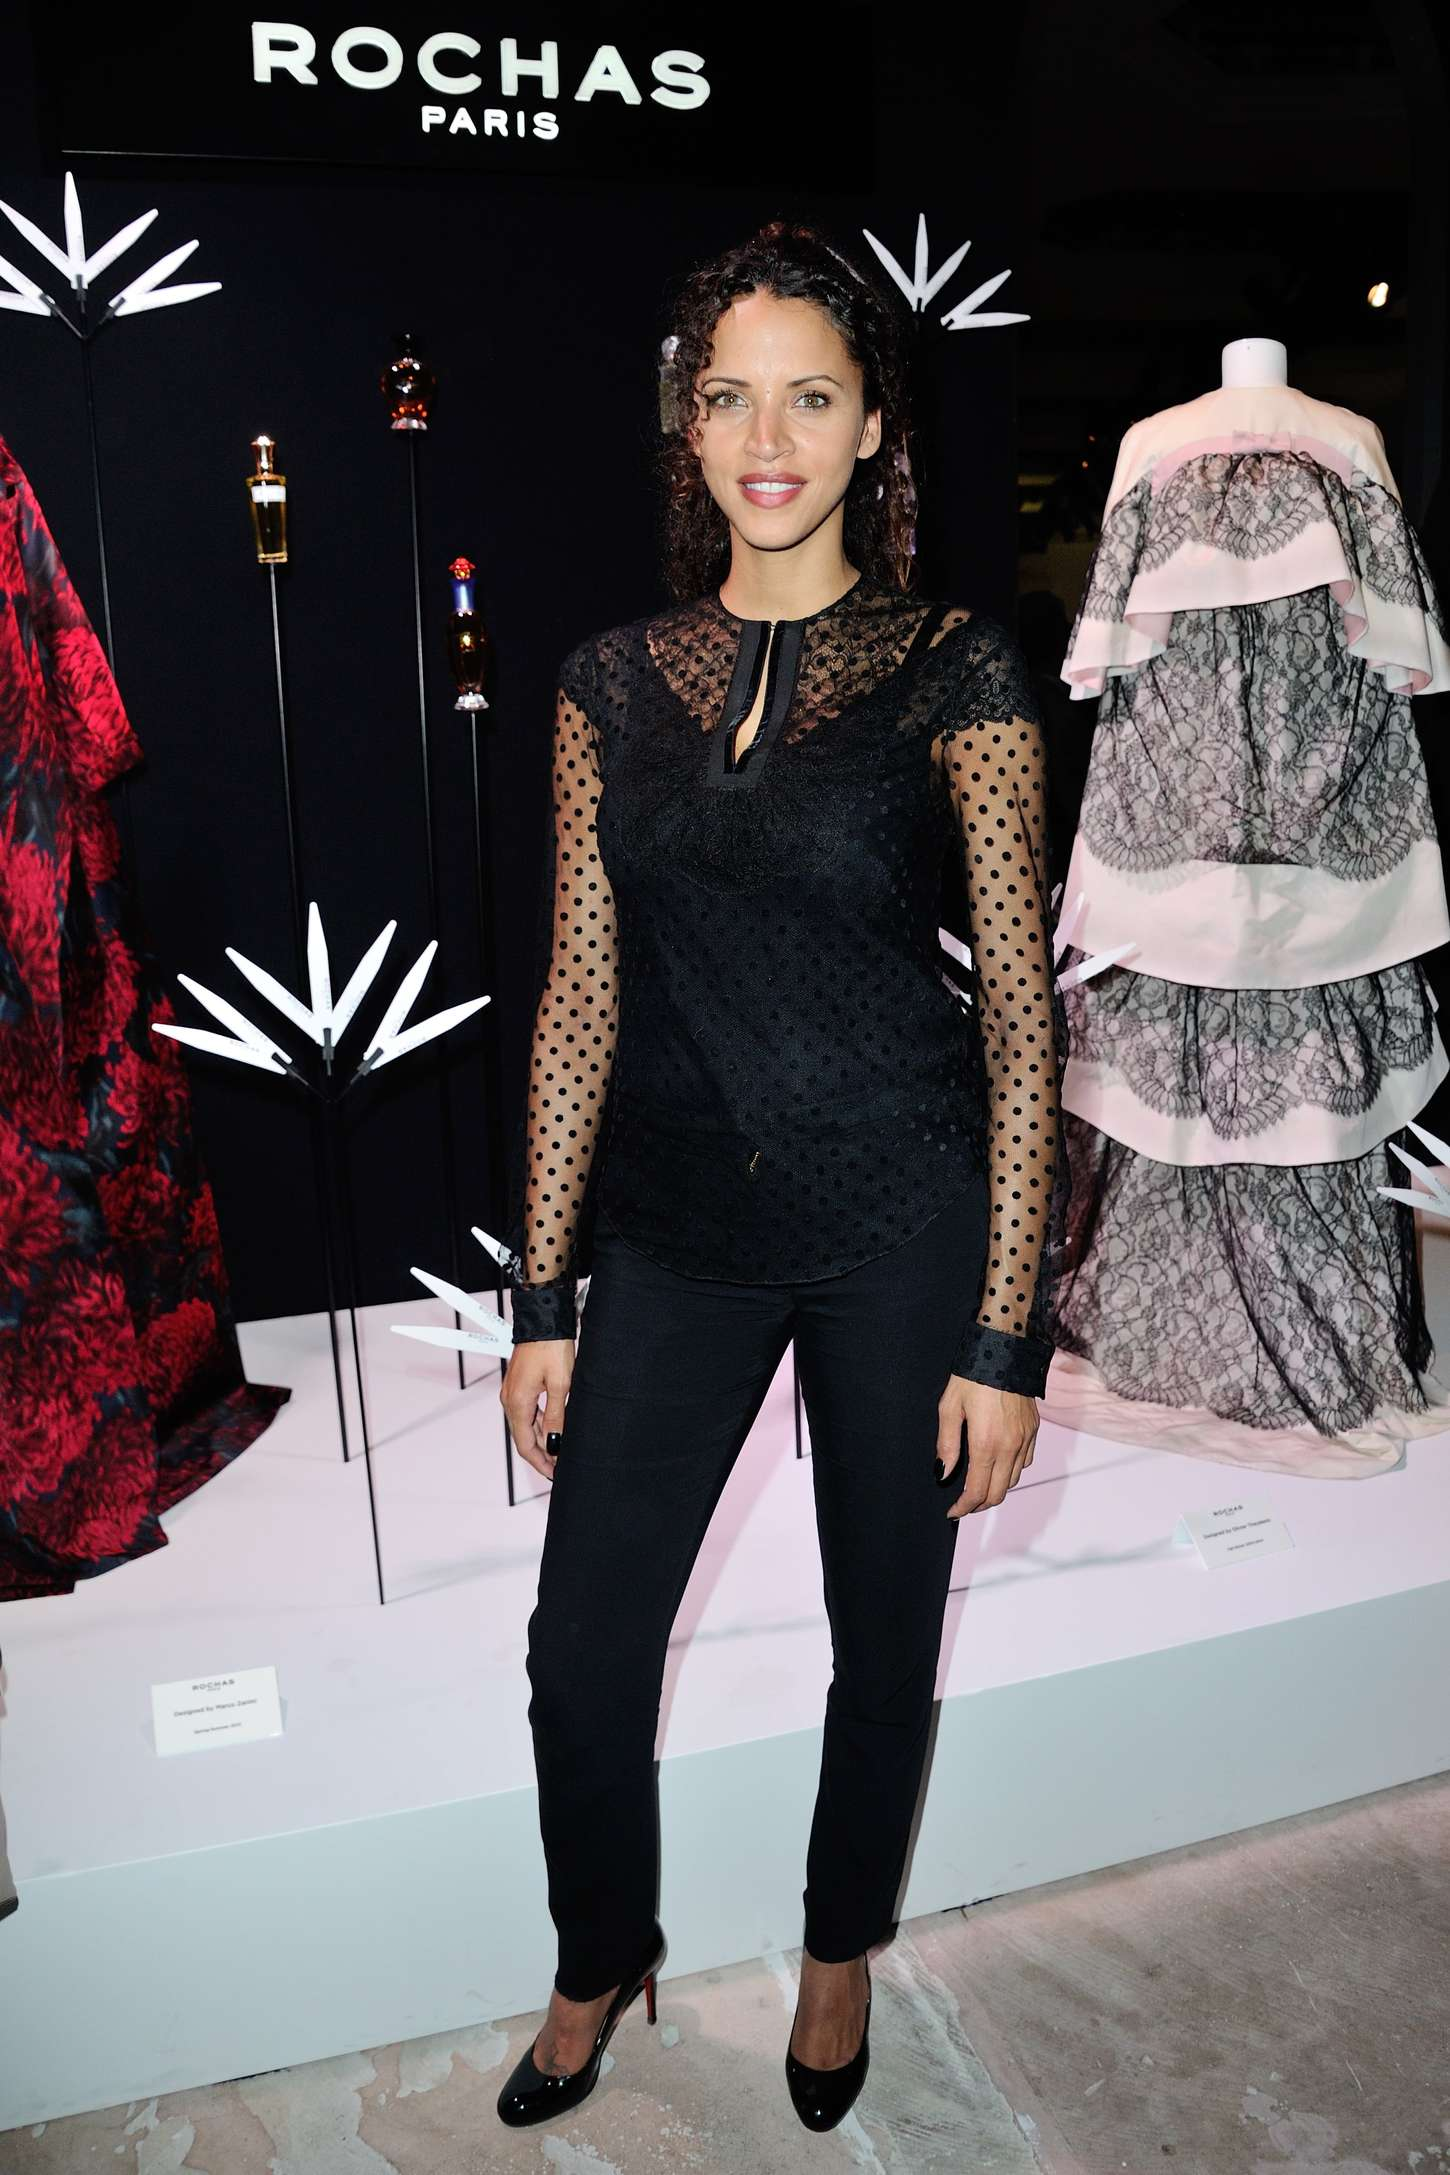 Noemie Lenoir Rochas Anniversary Cocktail at PFW SS in Paris